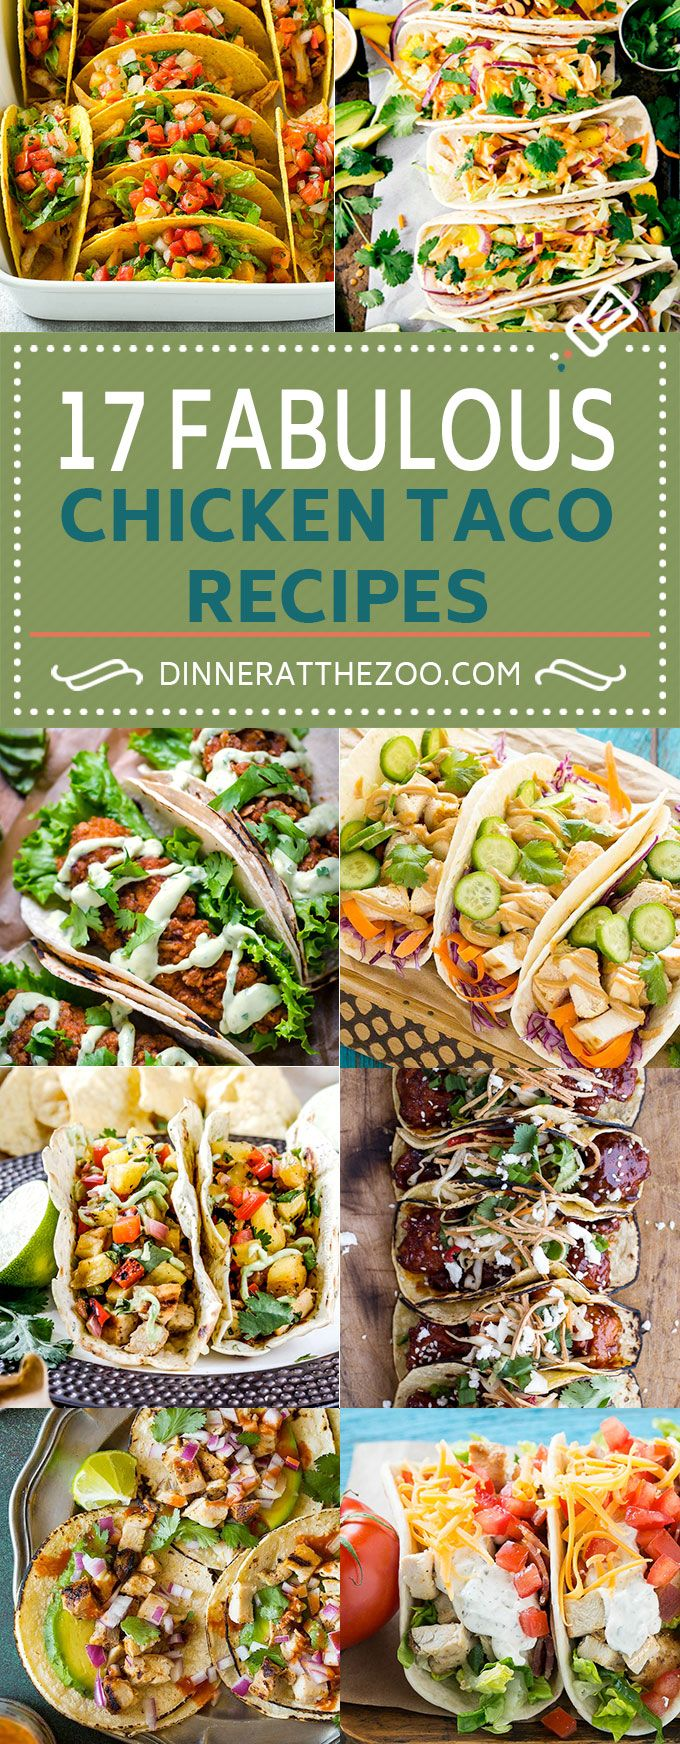 17 Fabulous Chicken Taco Recipes